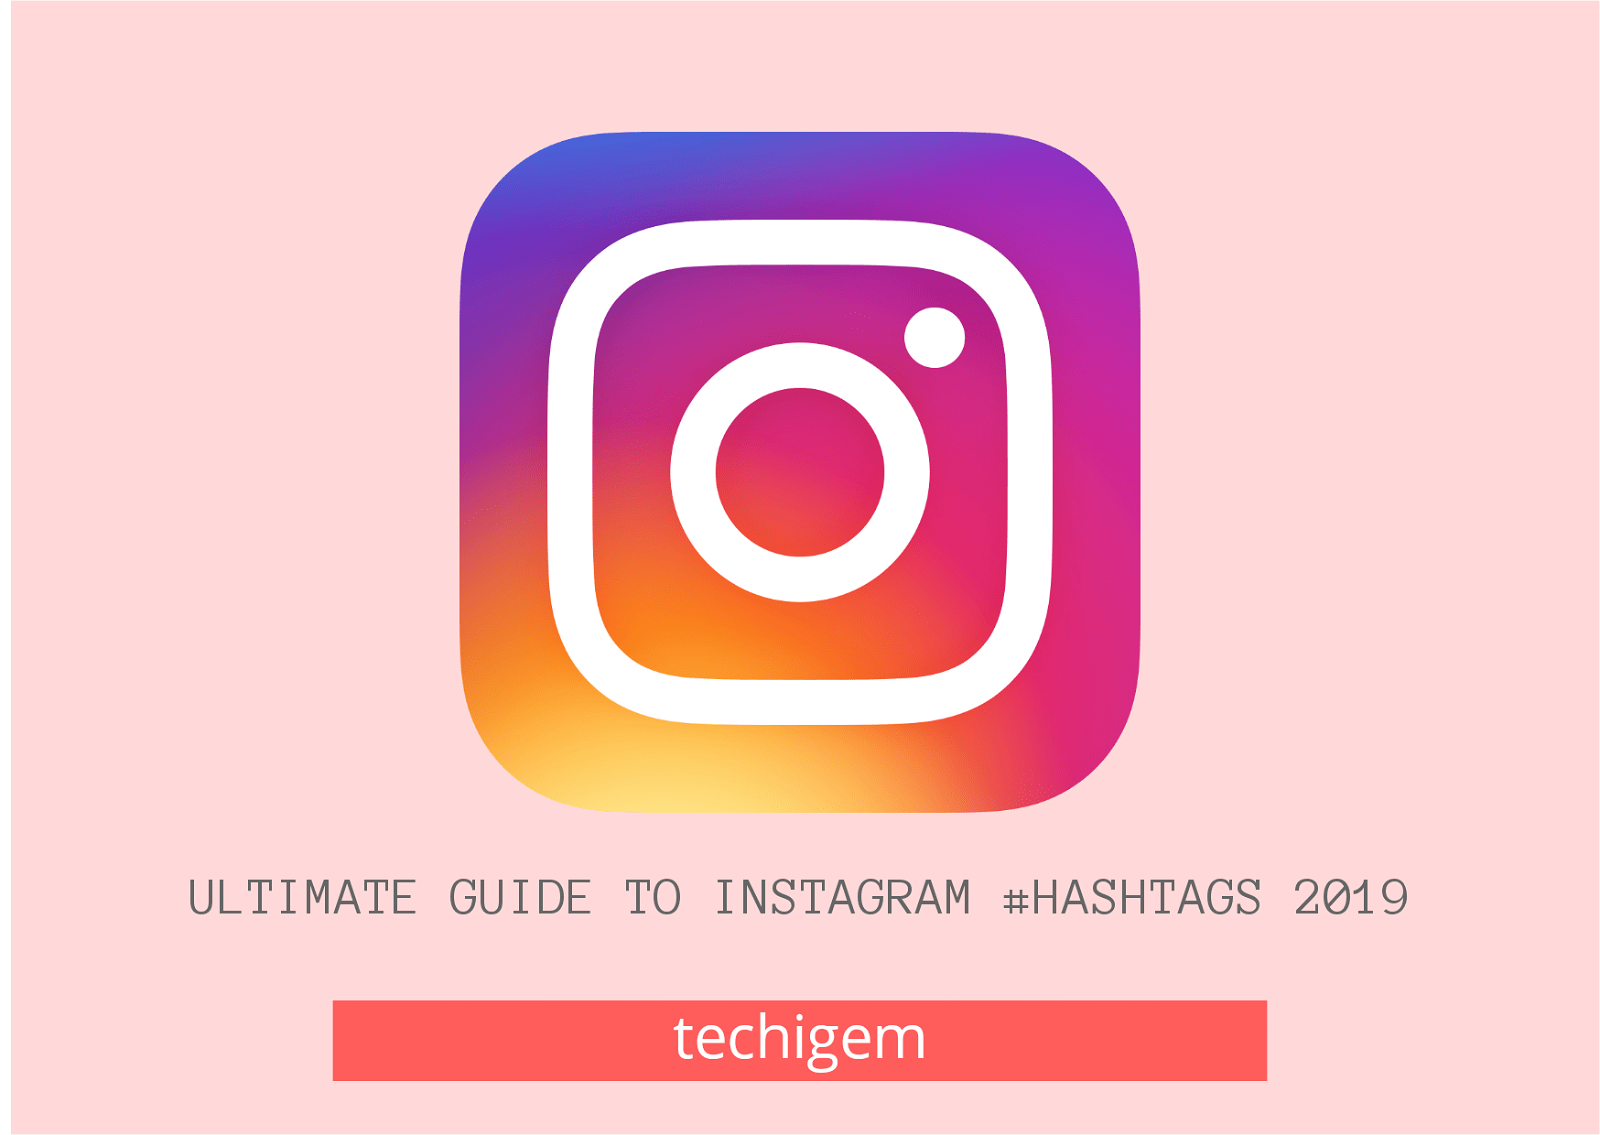 ultimate guide to instagram hashtags 2021